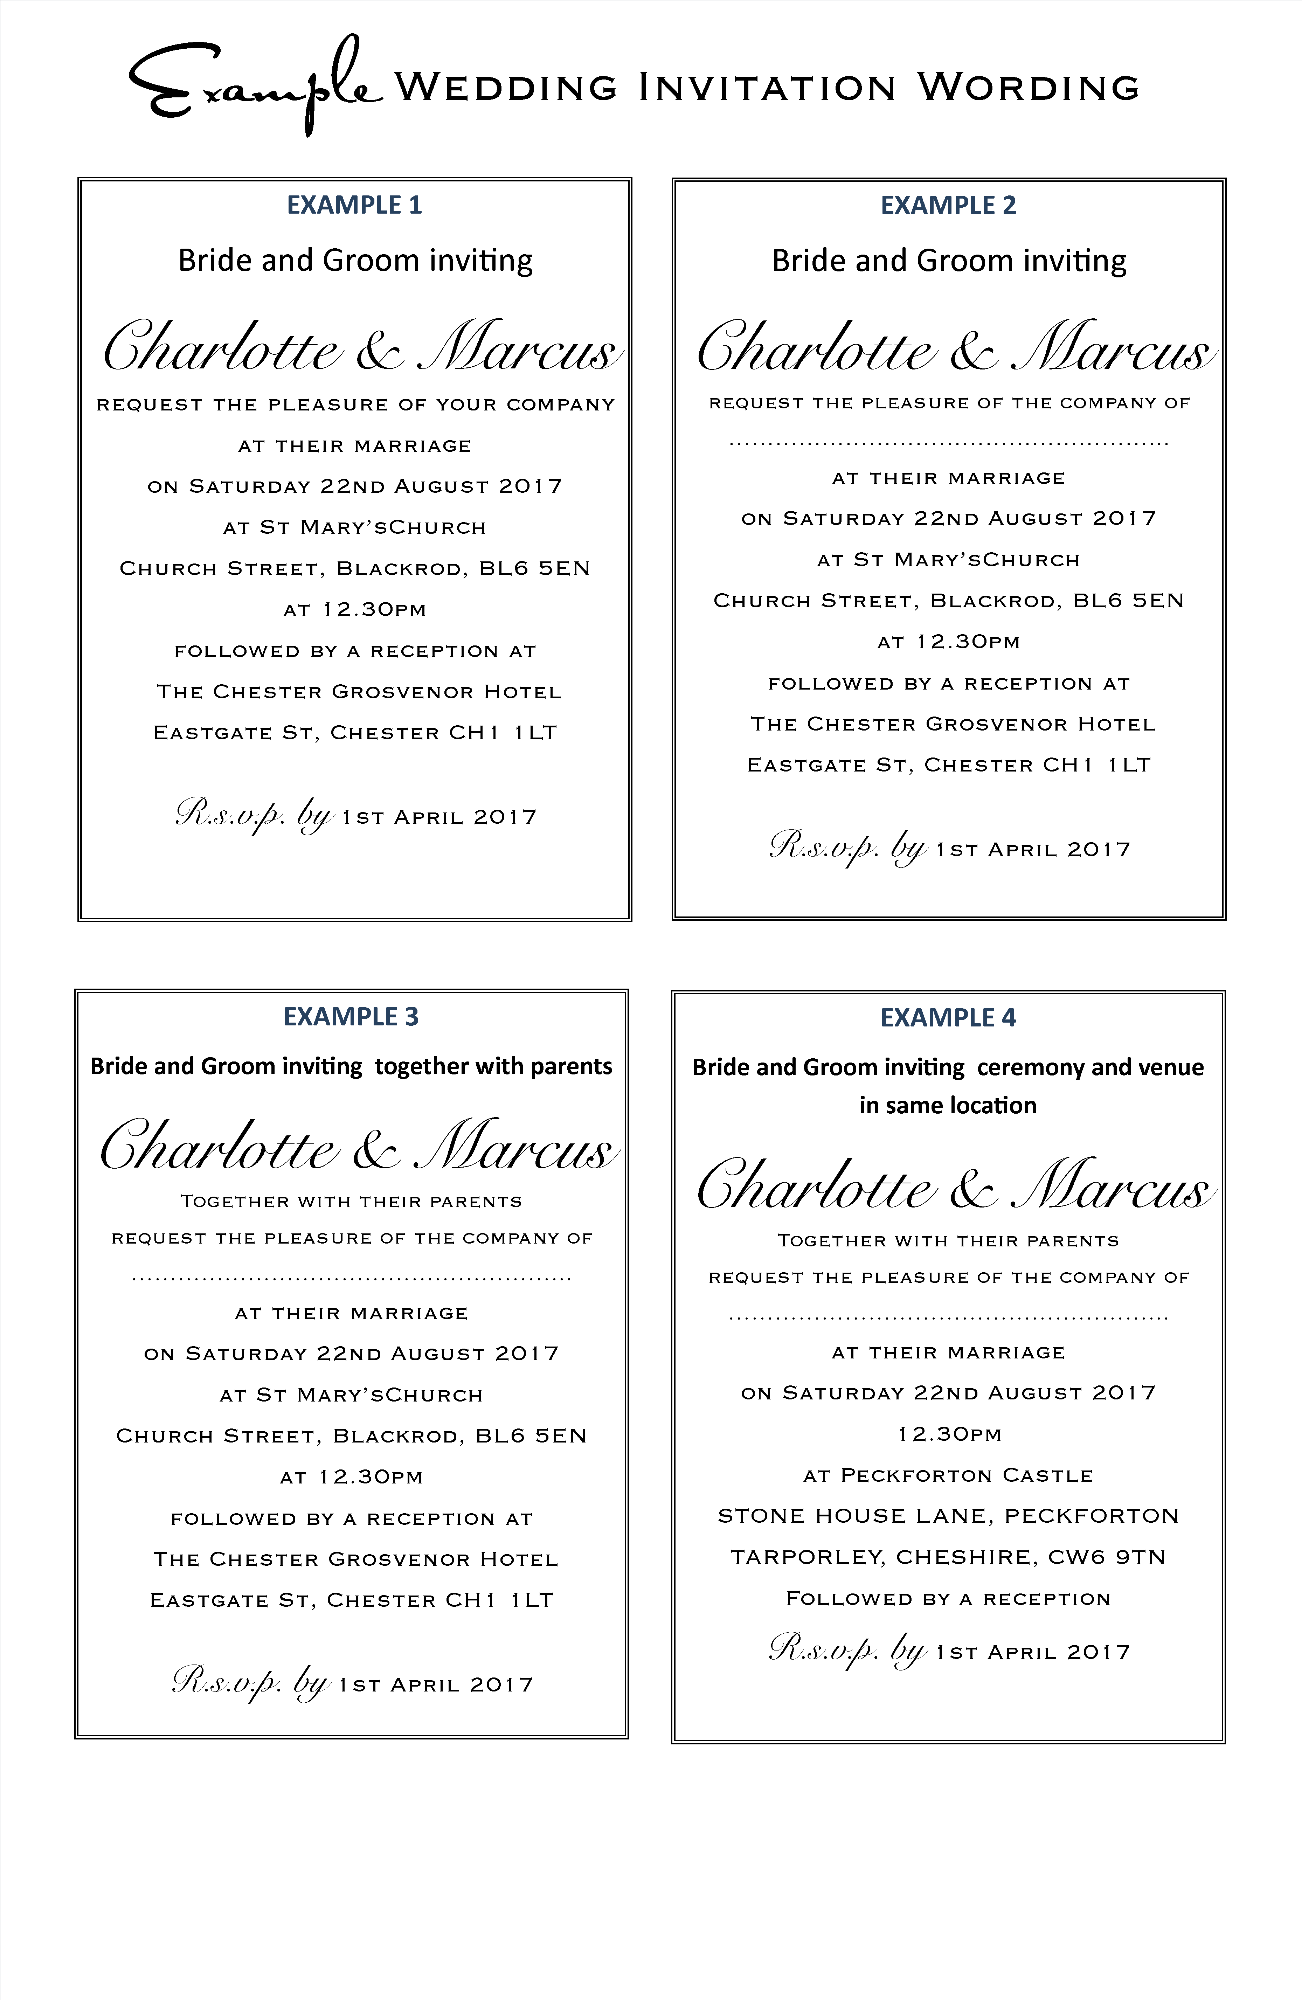 Wedding Invitation Wording Examples | Amor Designs